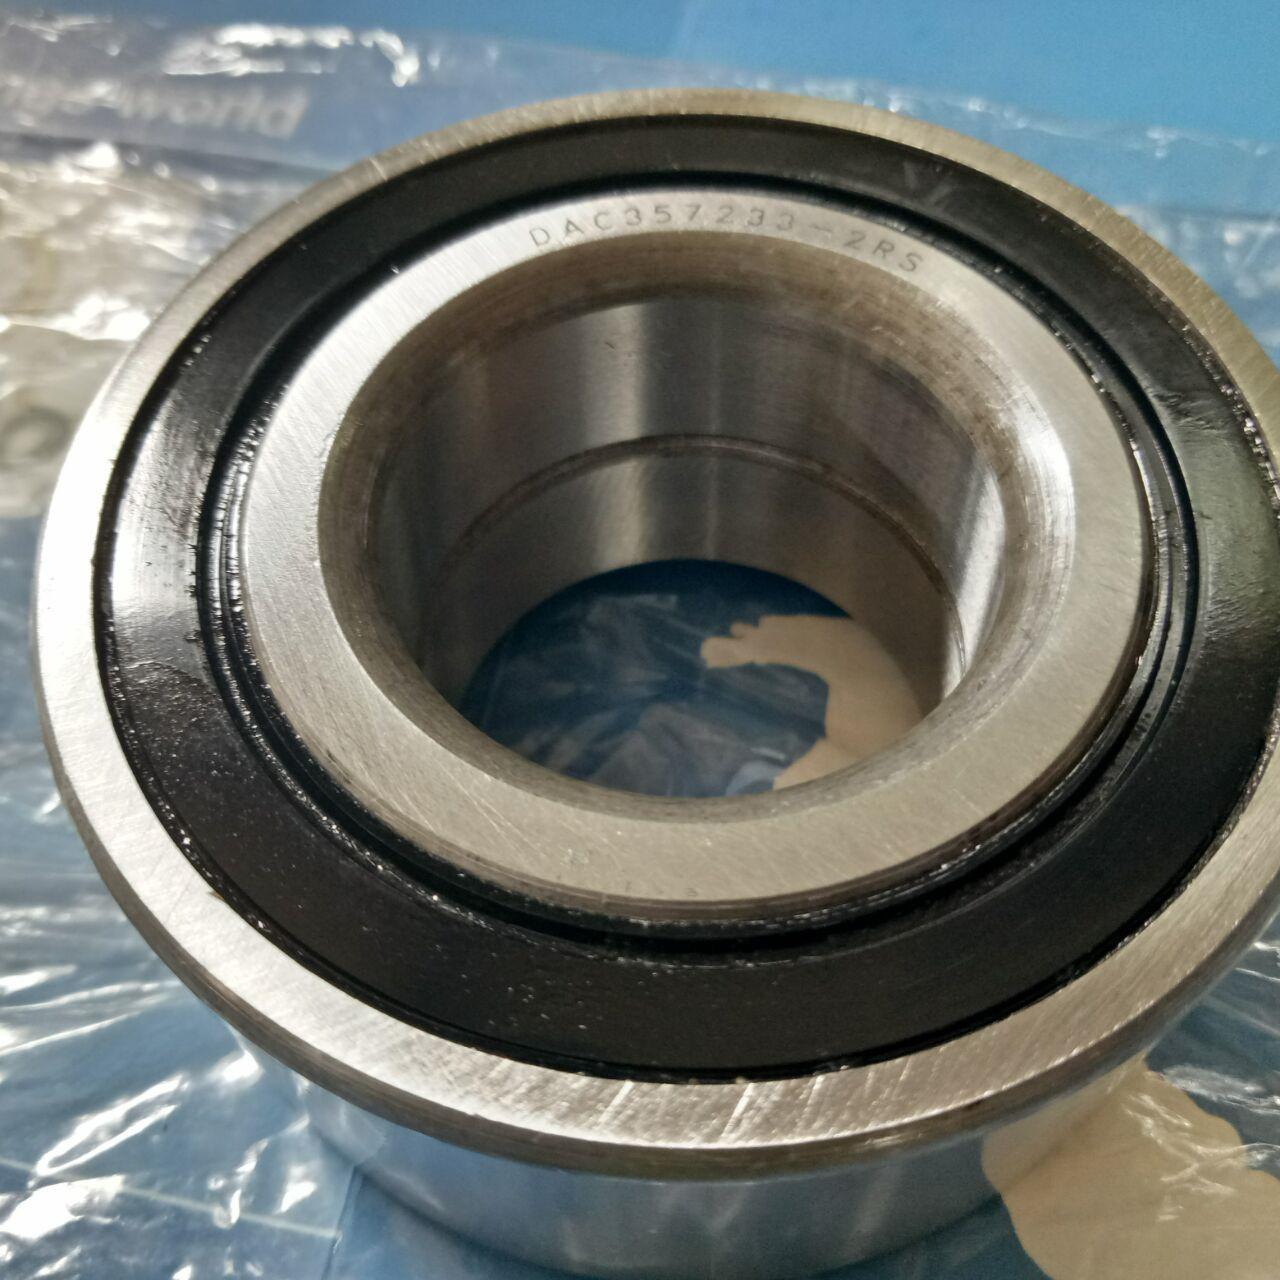 DAC357233-2RS Wheel Bearings  Used In The Automotive Axle  At The Load Manufactures